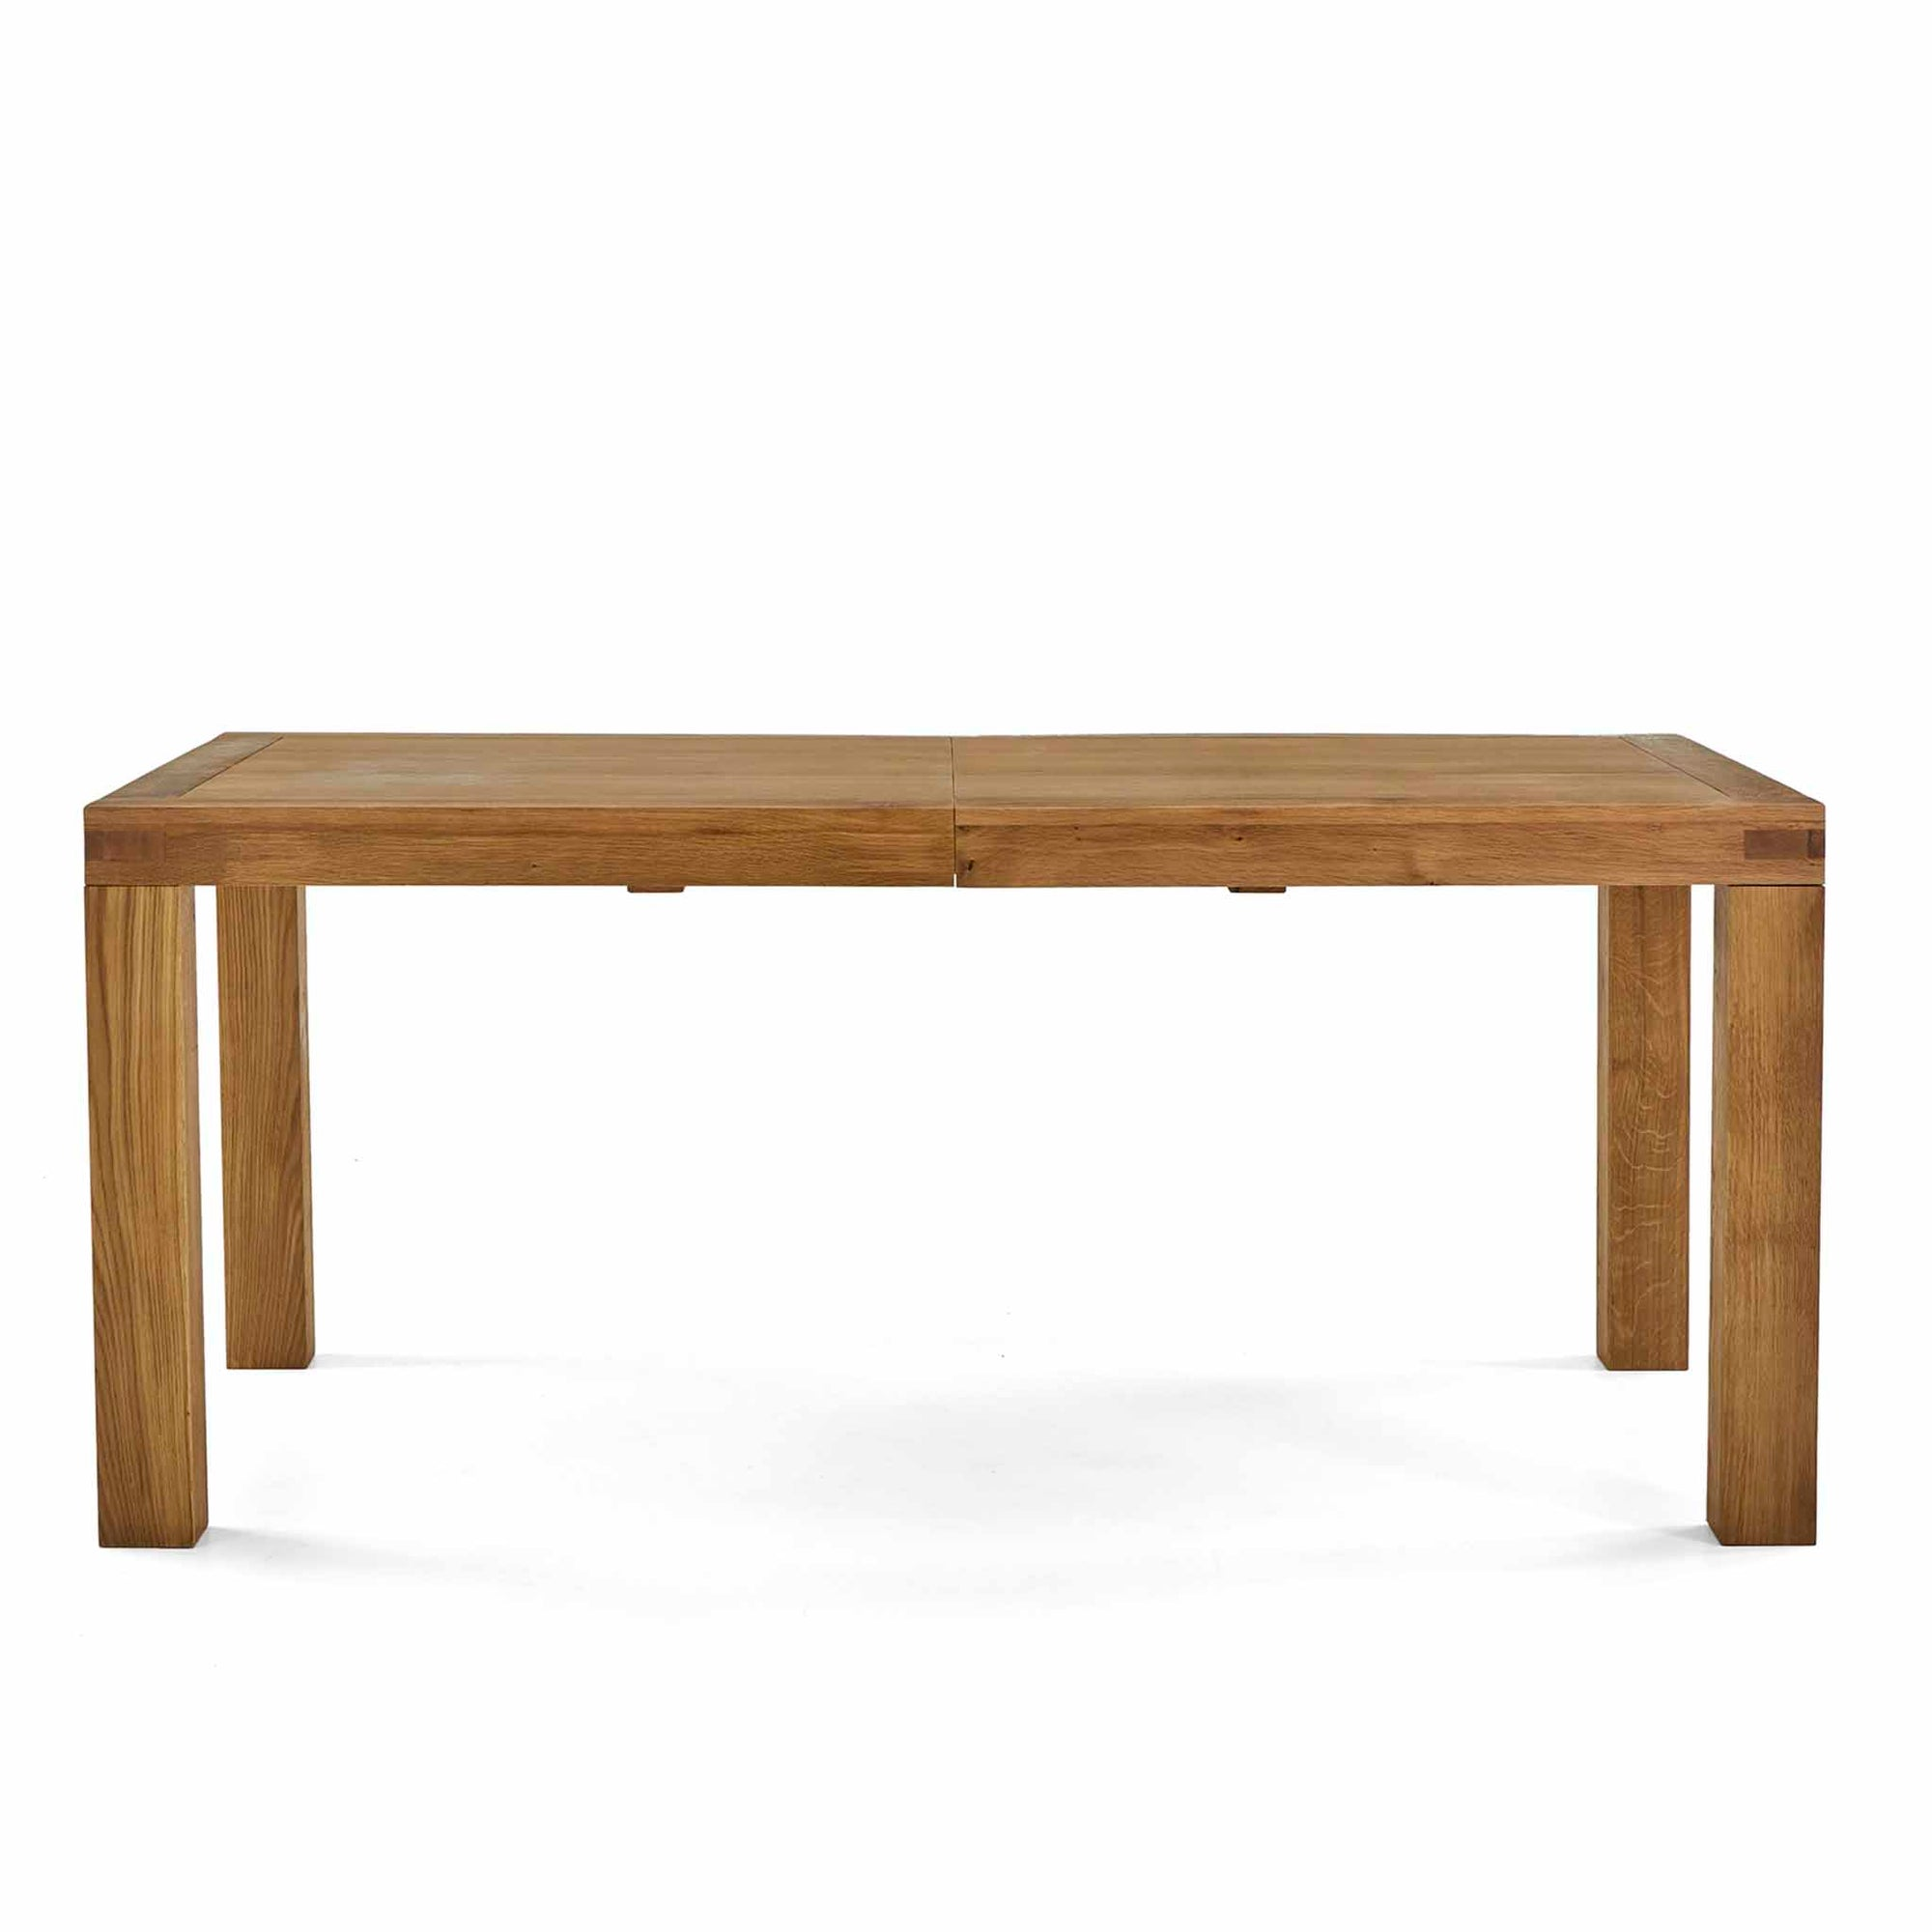 Abbey Grande 180cm-230cm Extending Table by Roseland Furniture